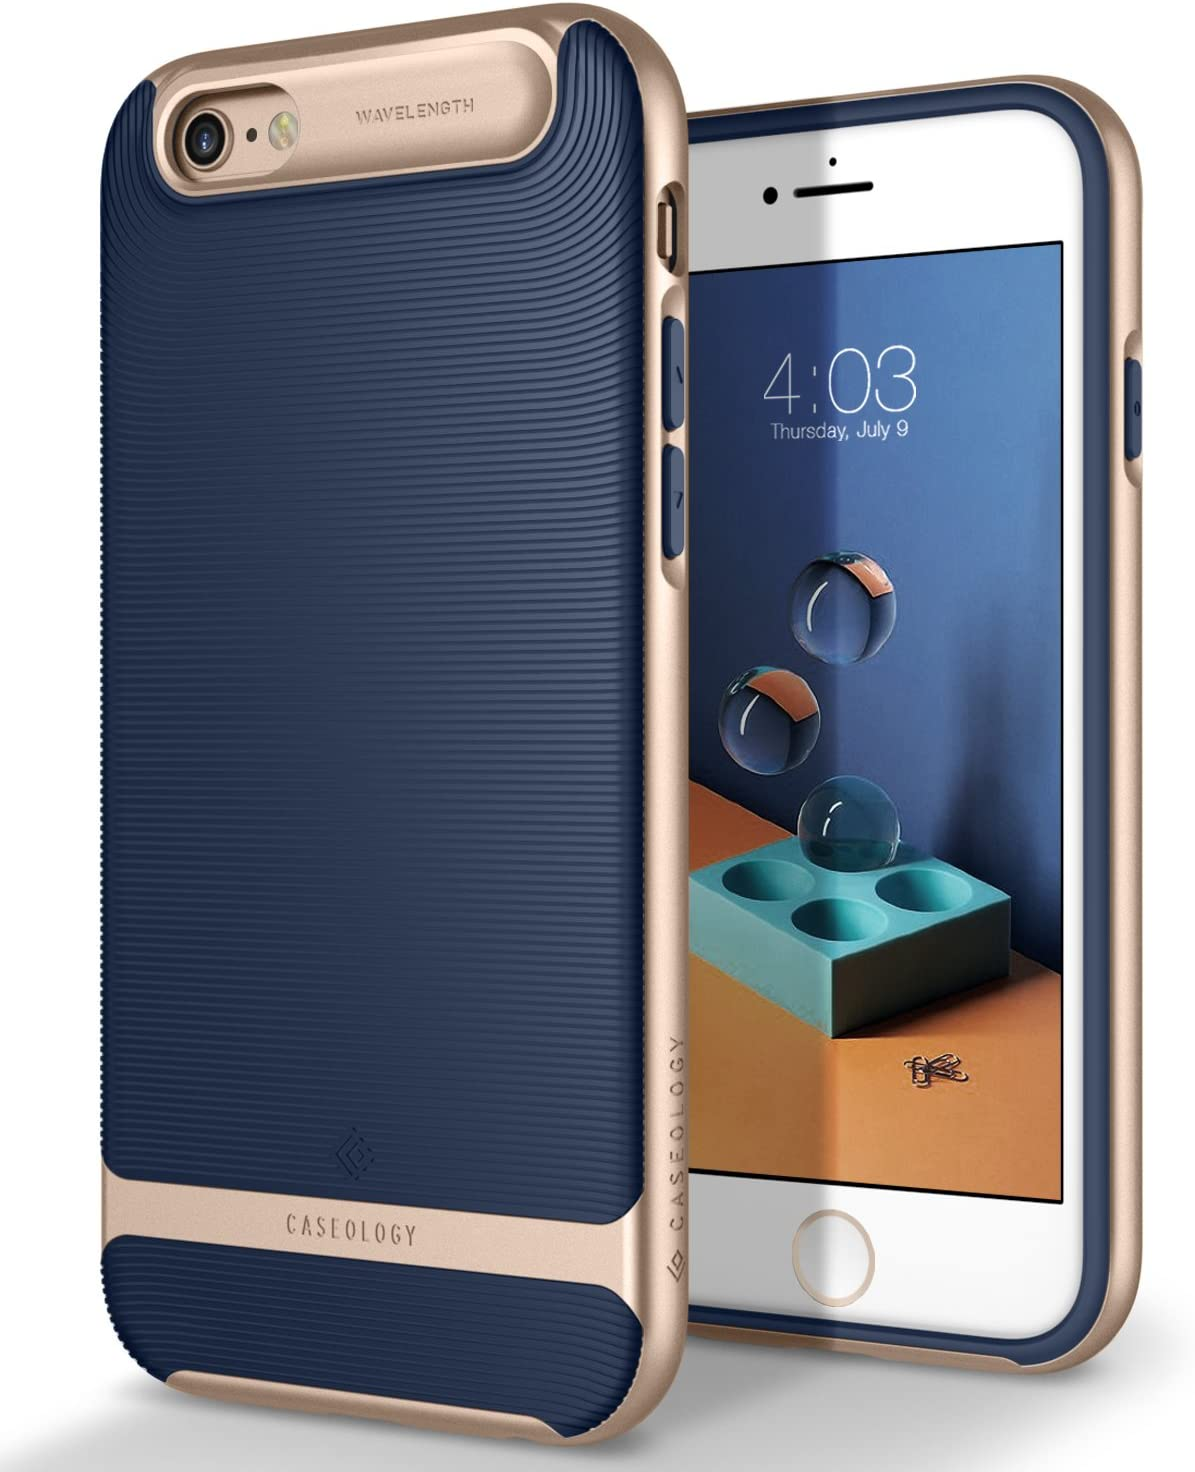 Caseology Wavelength for Apple iPhone 6S Case (2015) / for iPhone 6 Case (2014) - Navy Blue